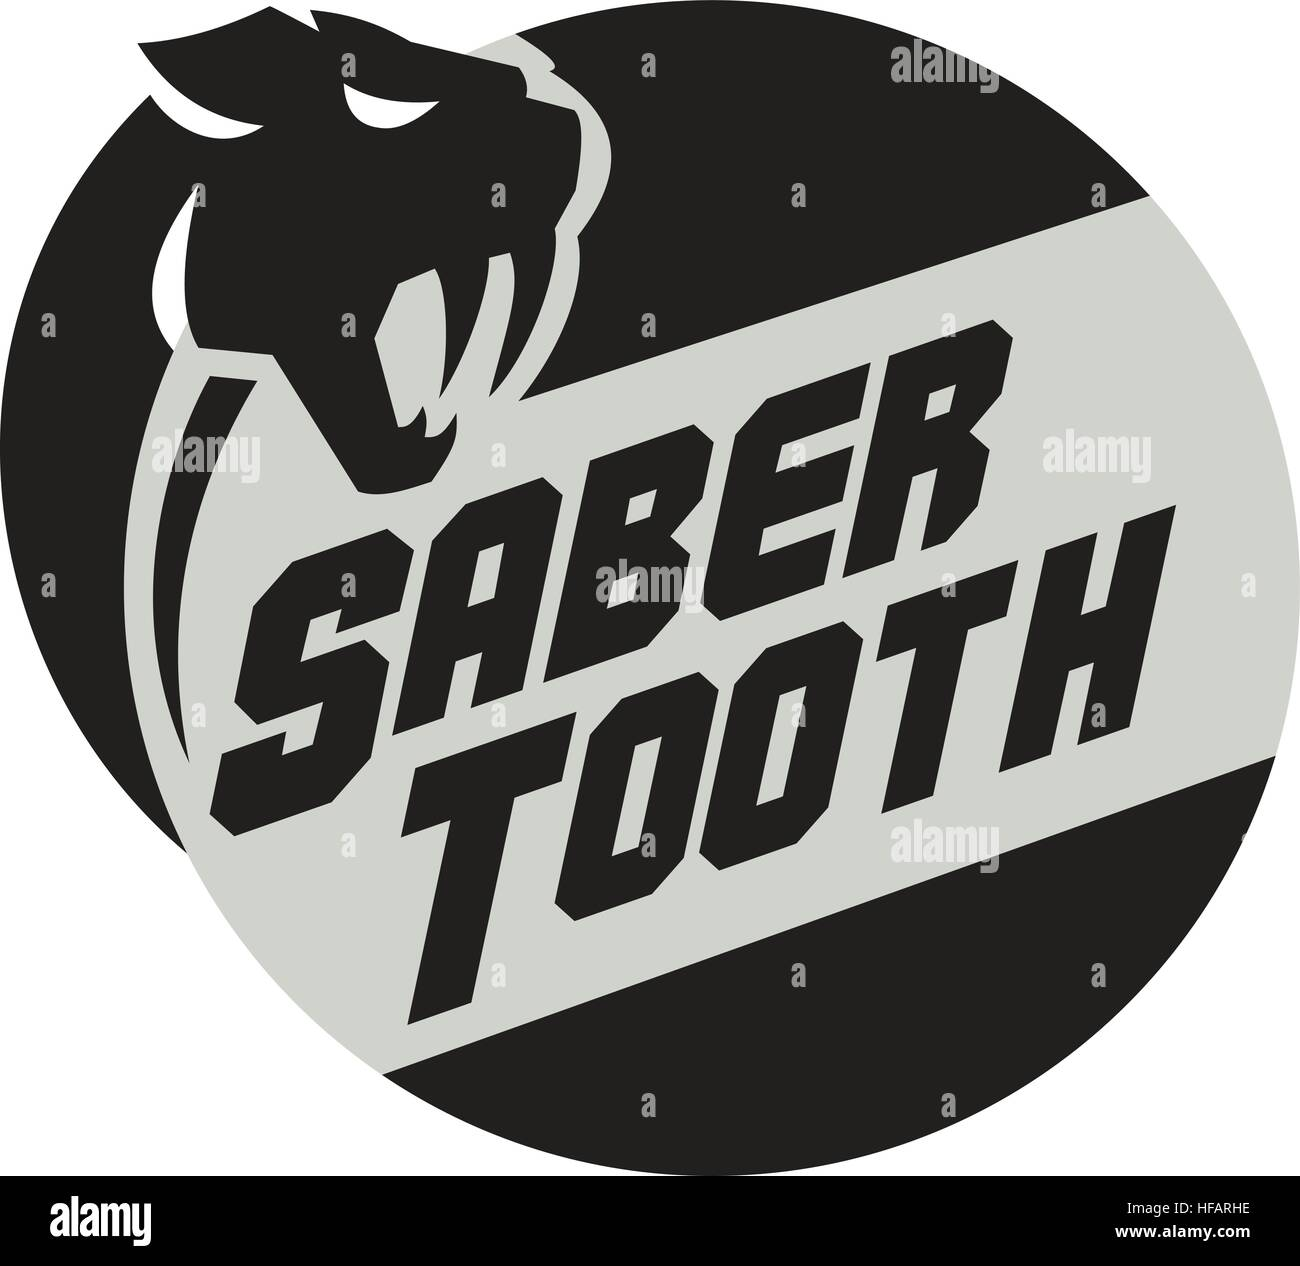 Illustration of a saber tooth tiger or sabre-tooth cat with long, curved saber-shaped canine teeth of which the Stock Vector